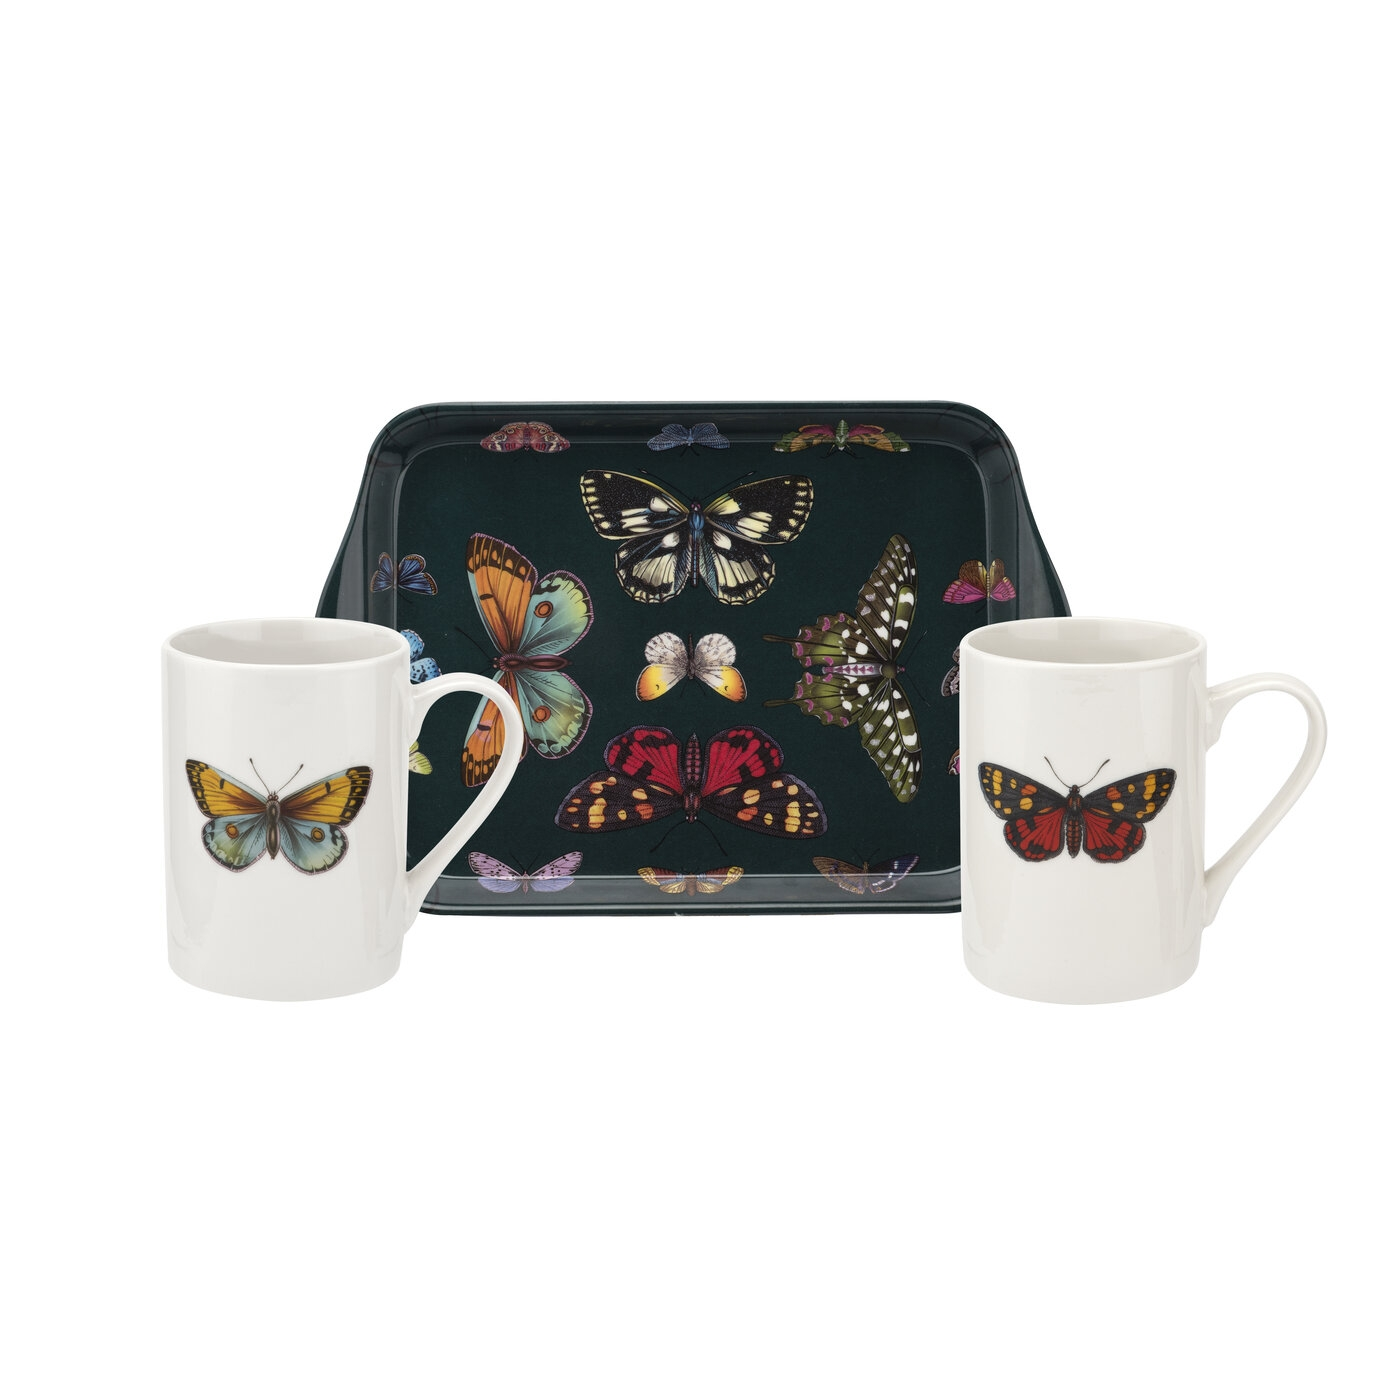 Pimpernel Botanic Garden Harmony Set of 2 Mugs and Tray image number 0